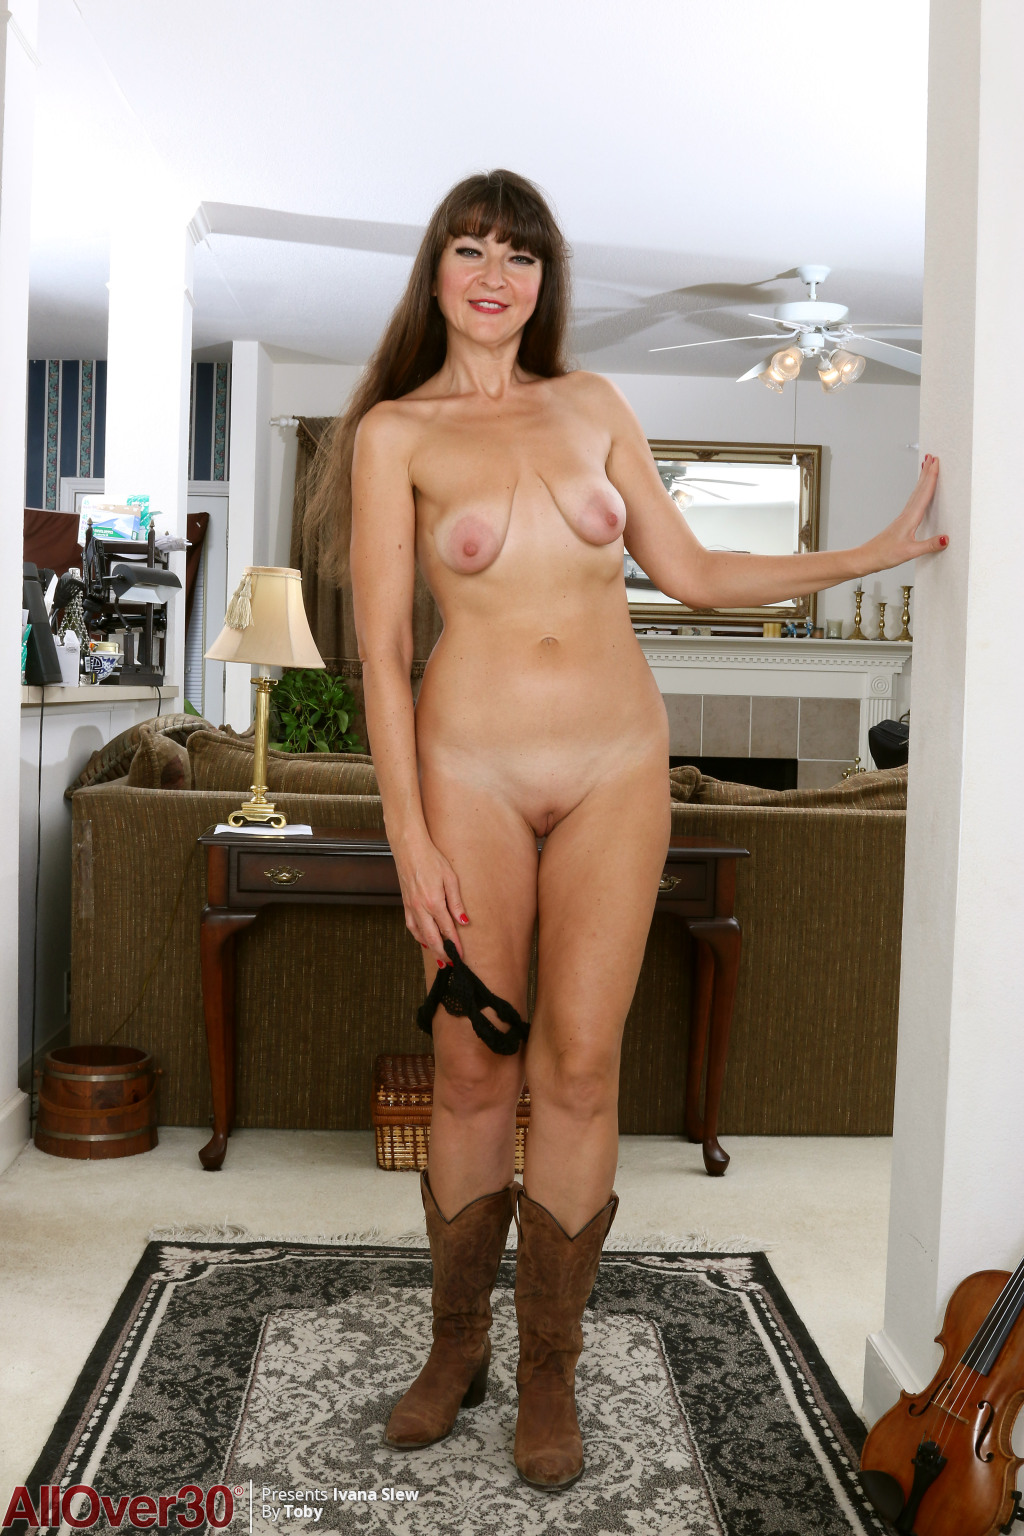 horny-cowgirl-ivana-slew-lets-us-see-her-saggy-breasts-and-hot-shaved-pussy9.jpg